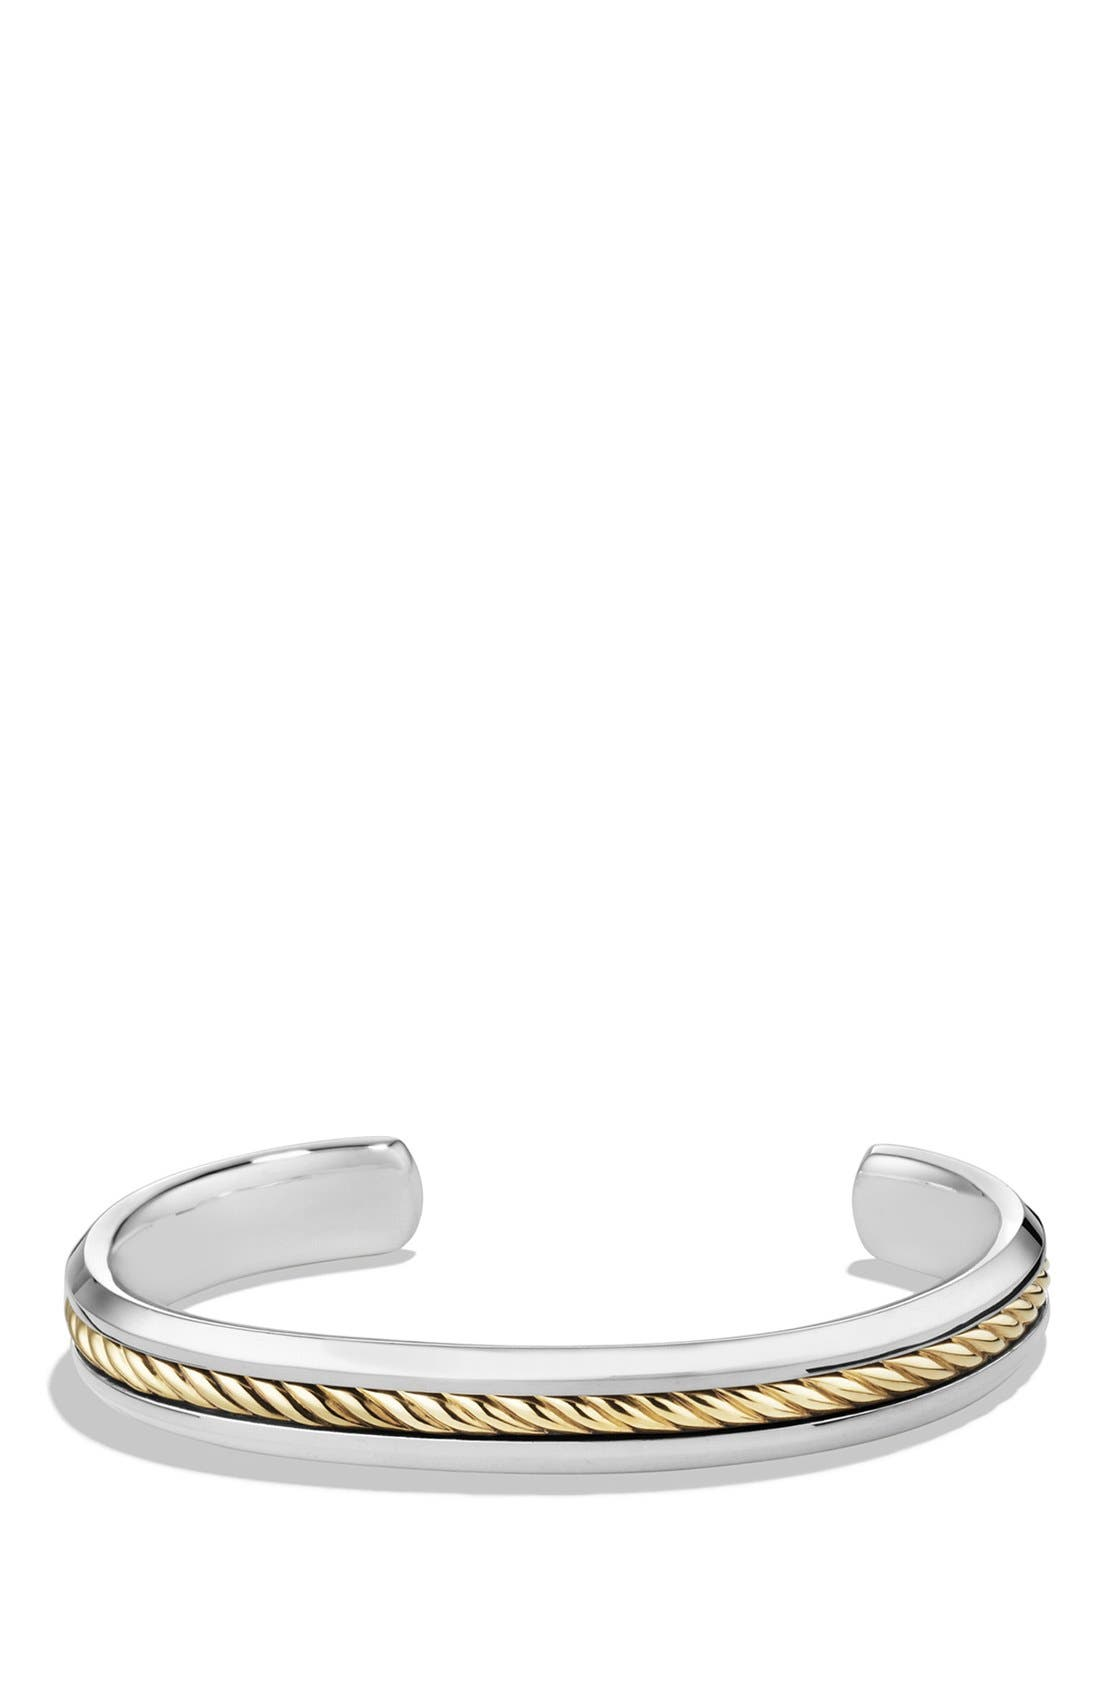 'Cable Classics' Cuff Bracelet with Gold,                         Main,                         color, 040